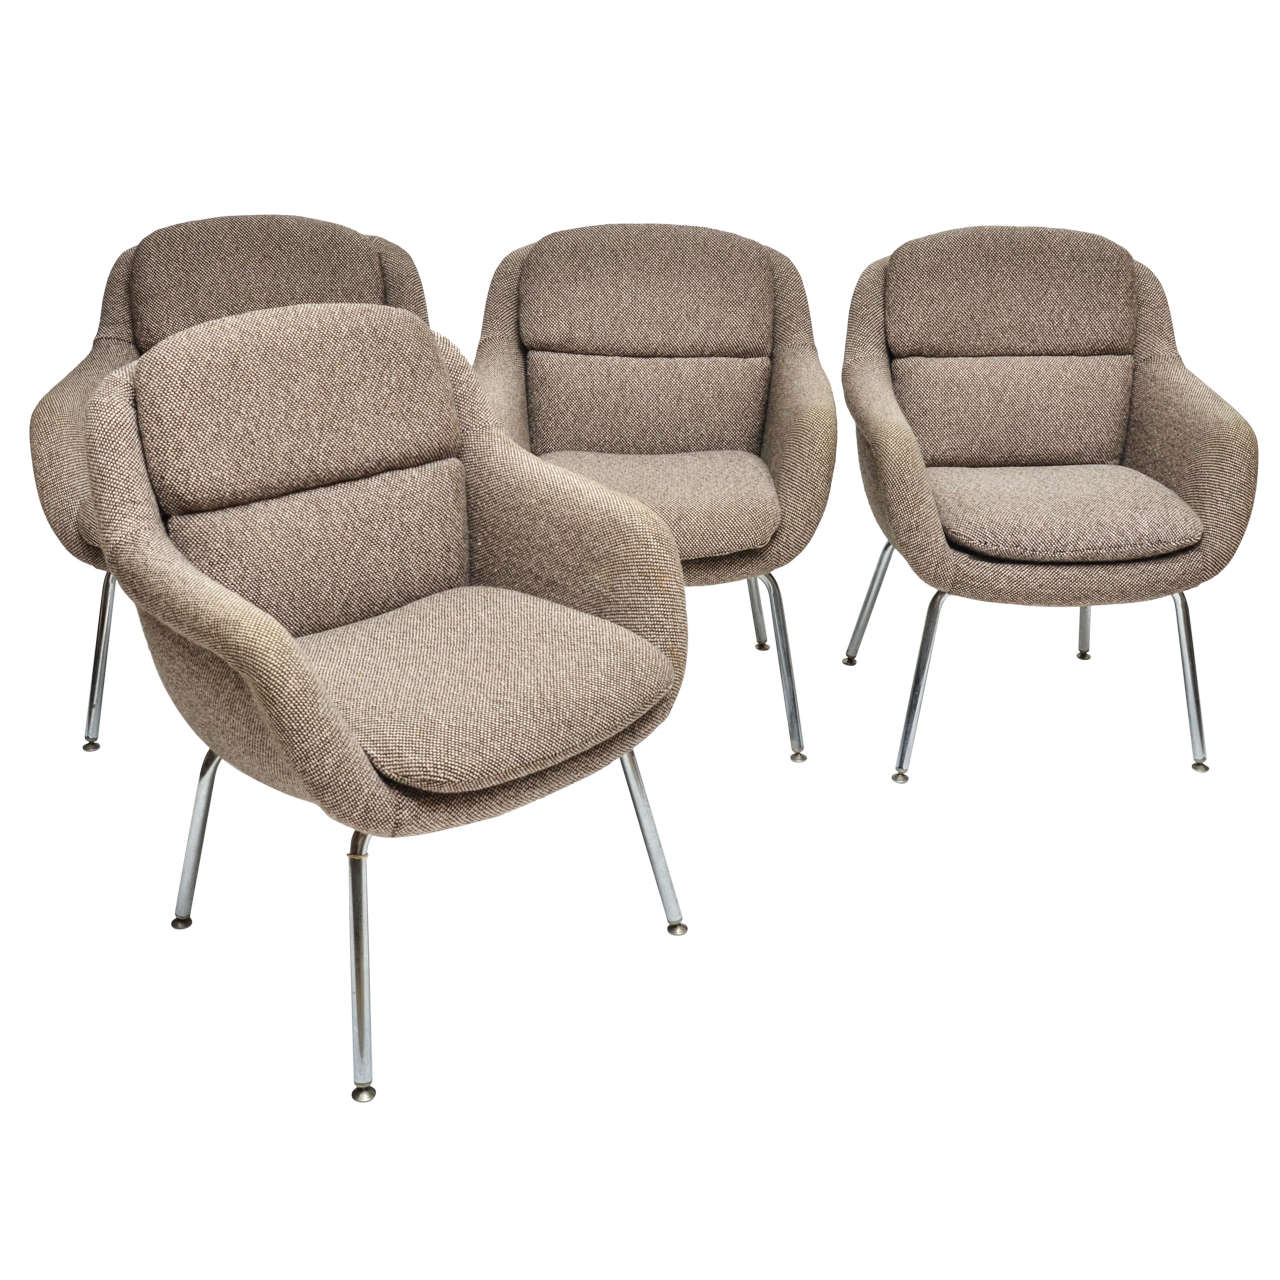 arm chairs for sale simple chair design mid century modern set of four upholstered dining